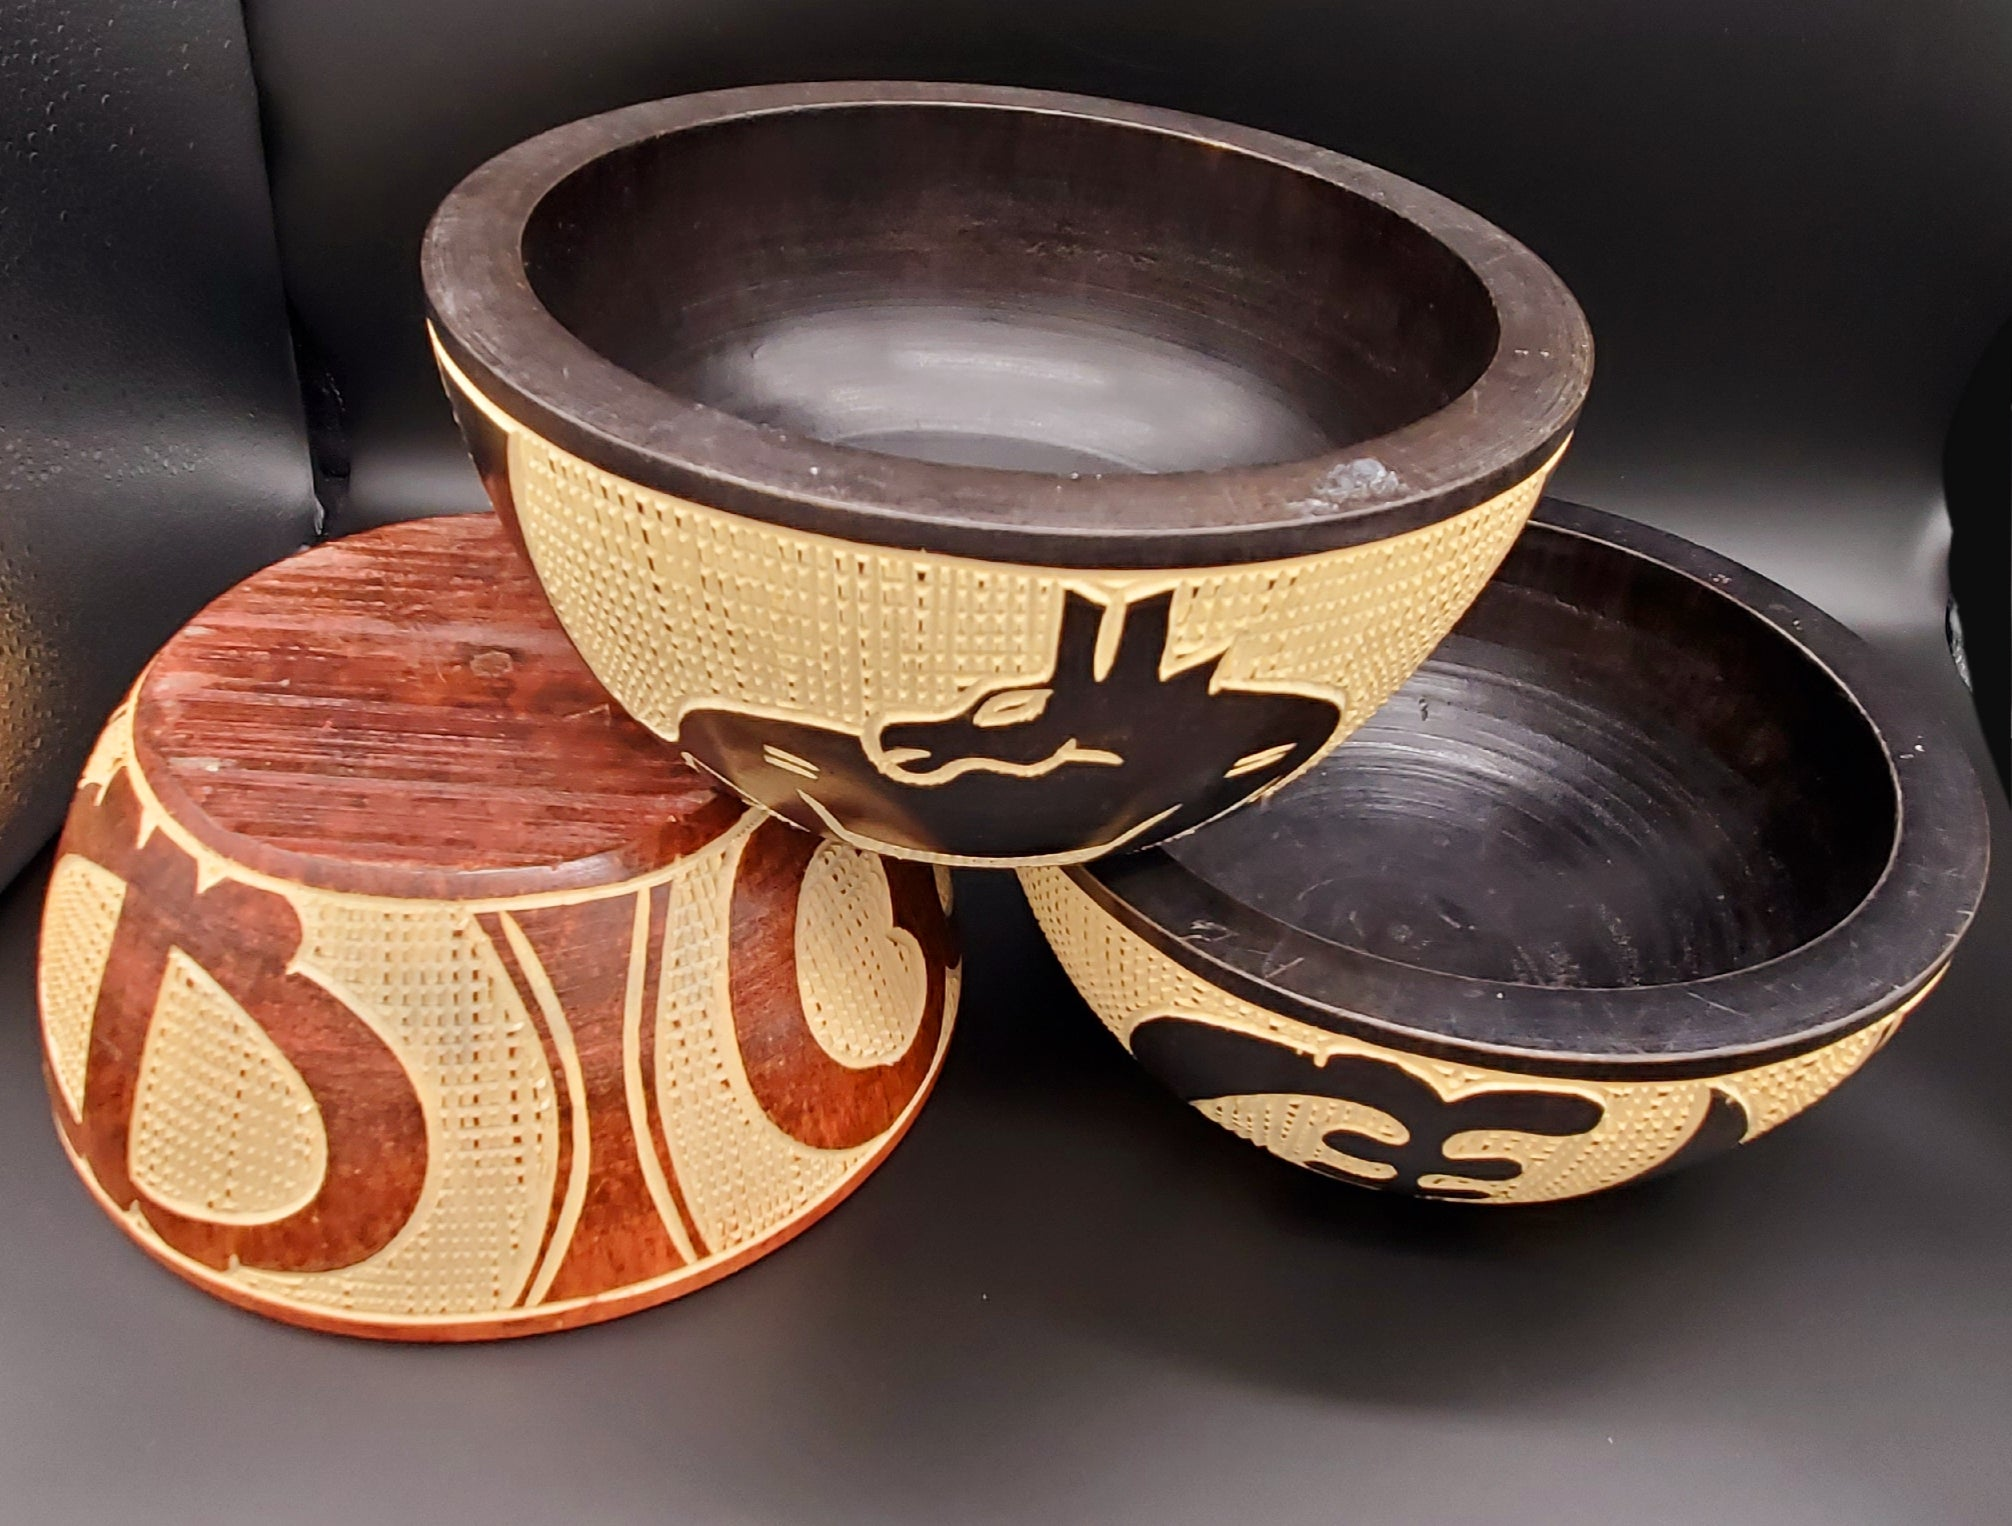 Handmade solid wood carved bowl & unity stand.